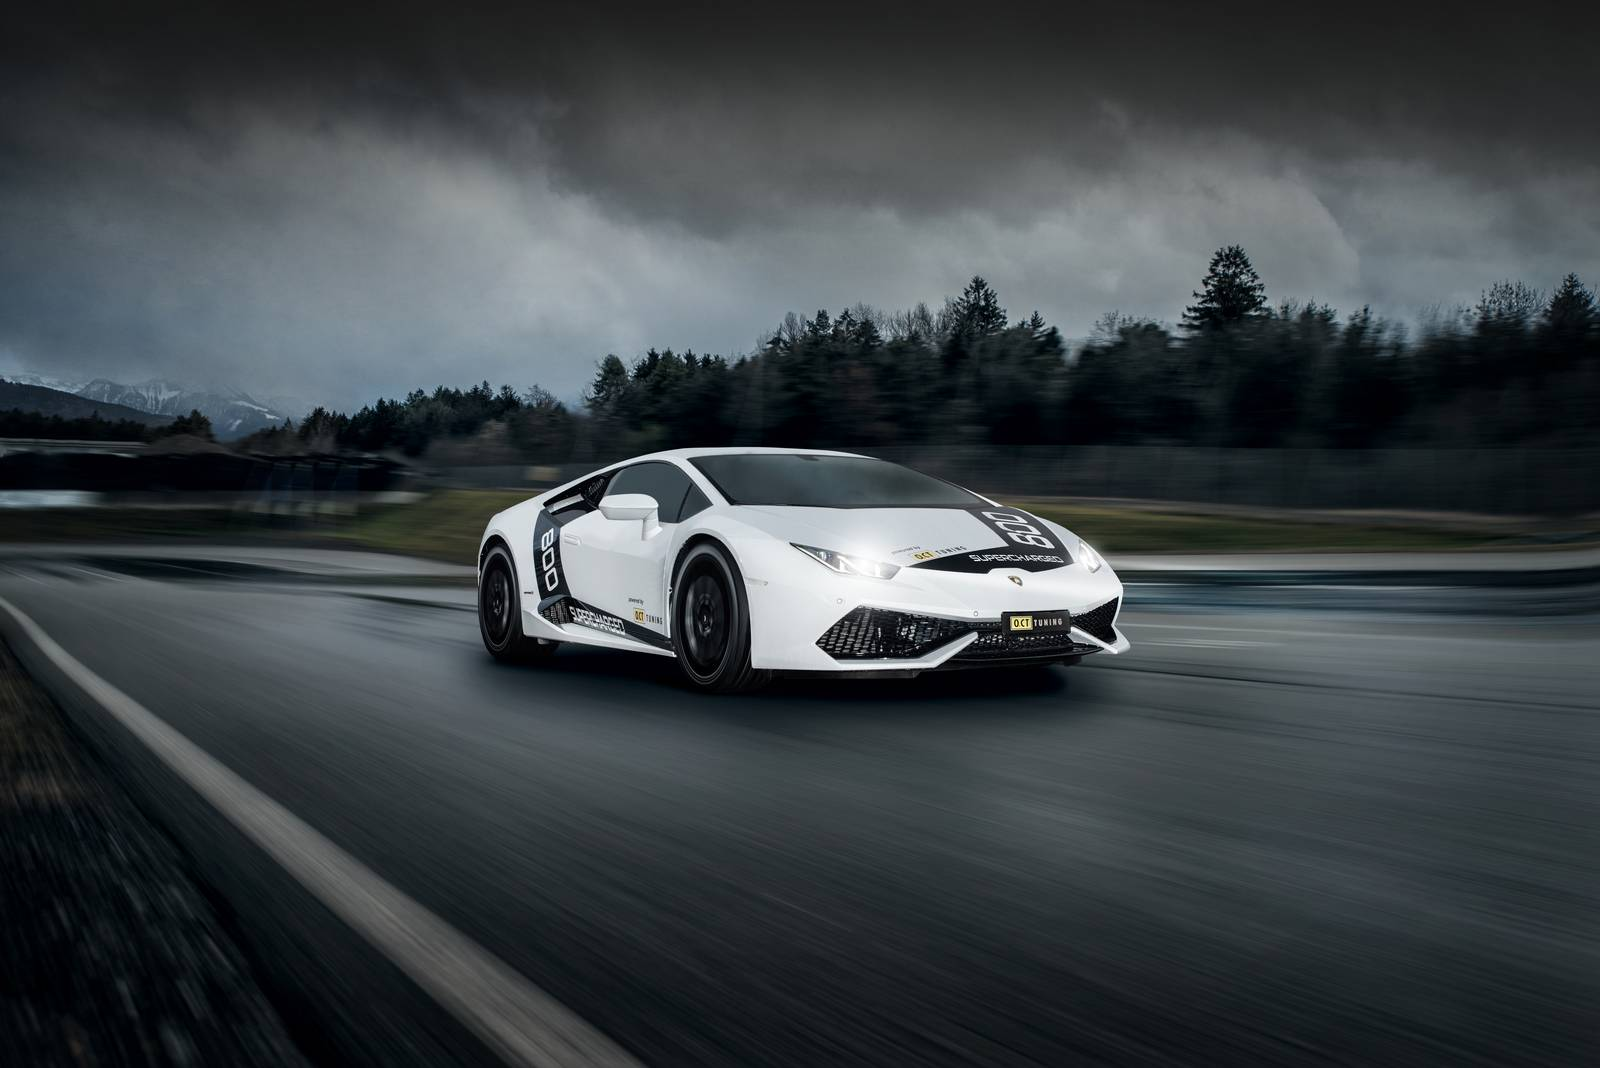 official 805hp supercharged lamborghini huracan by o ct tuning gtspirit. Black Bedroom Furniture Sets. Home Design Ideas